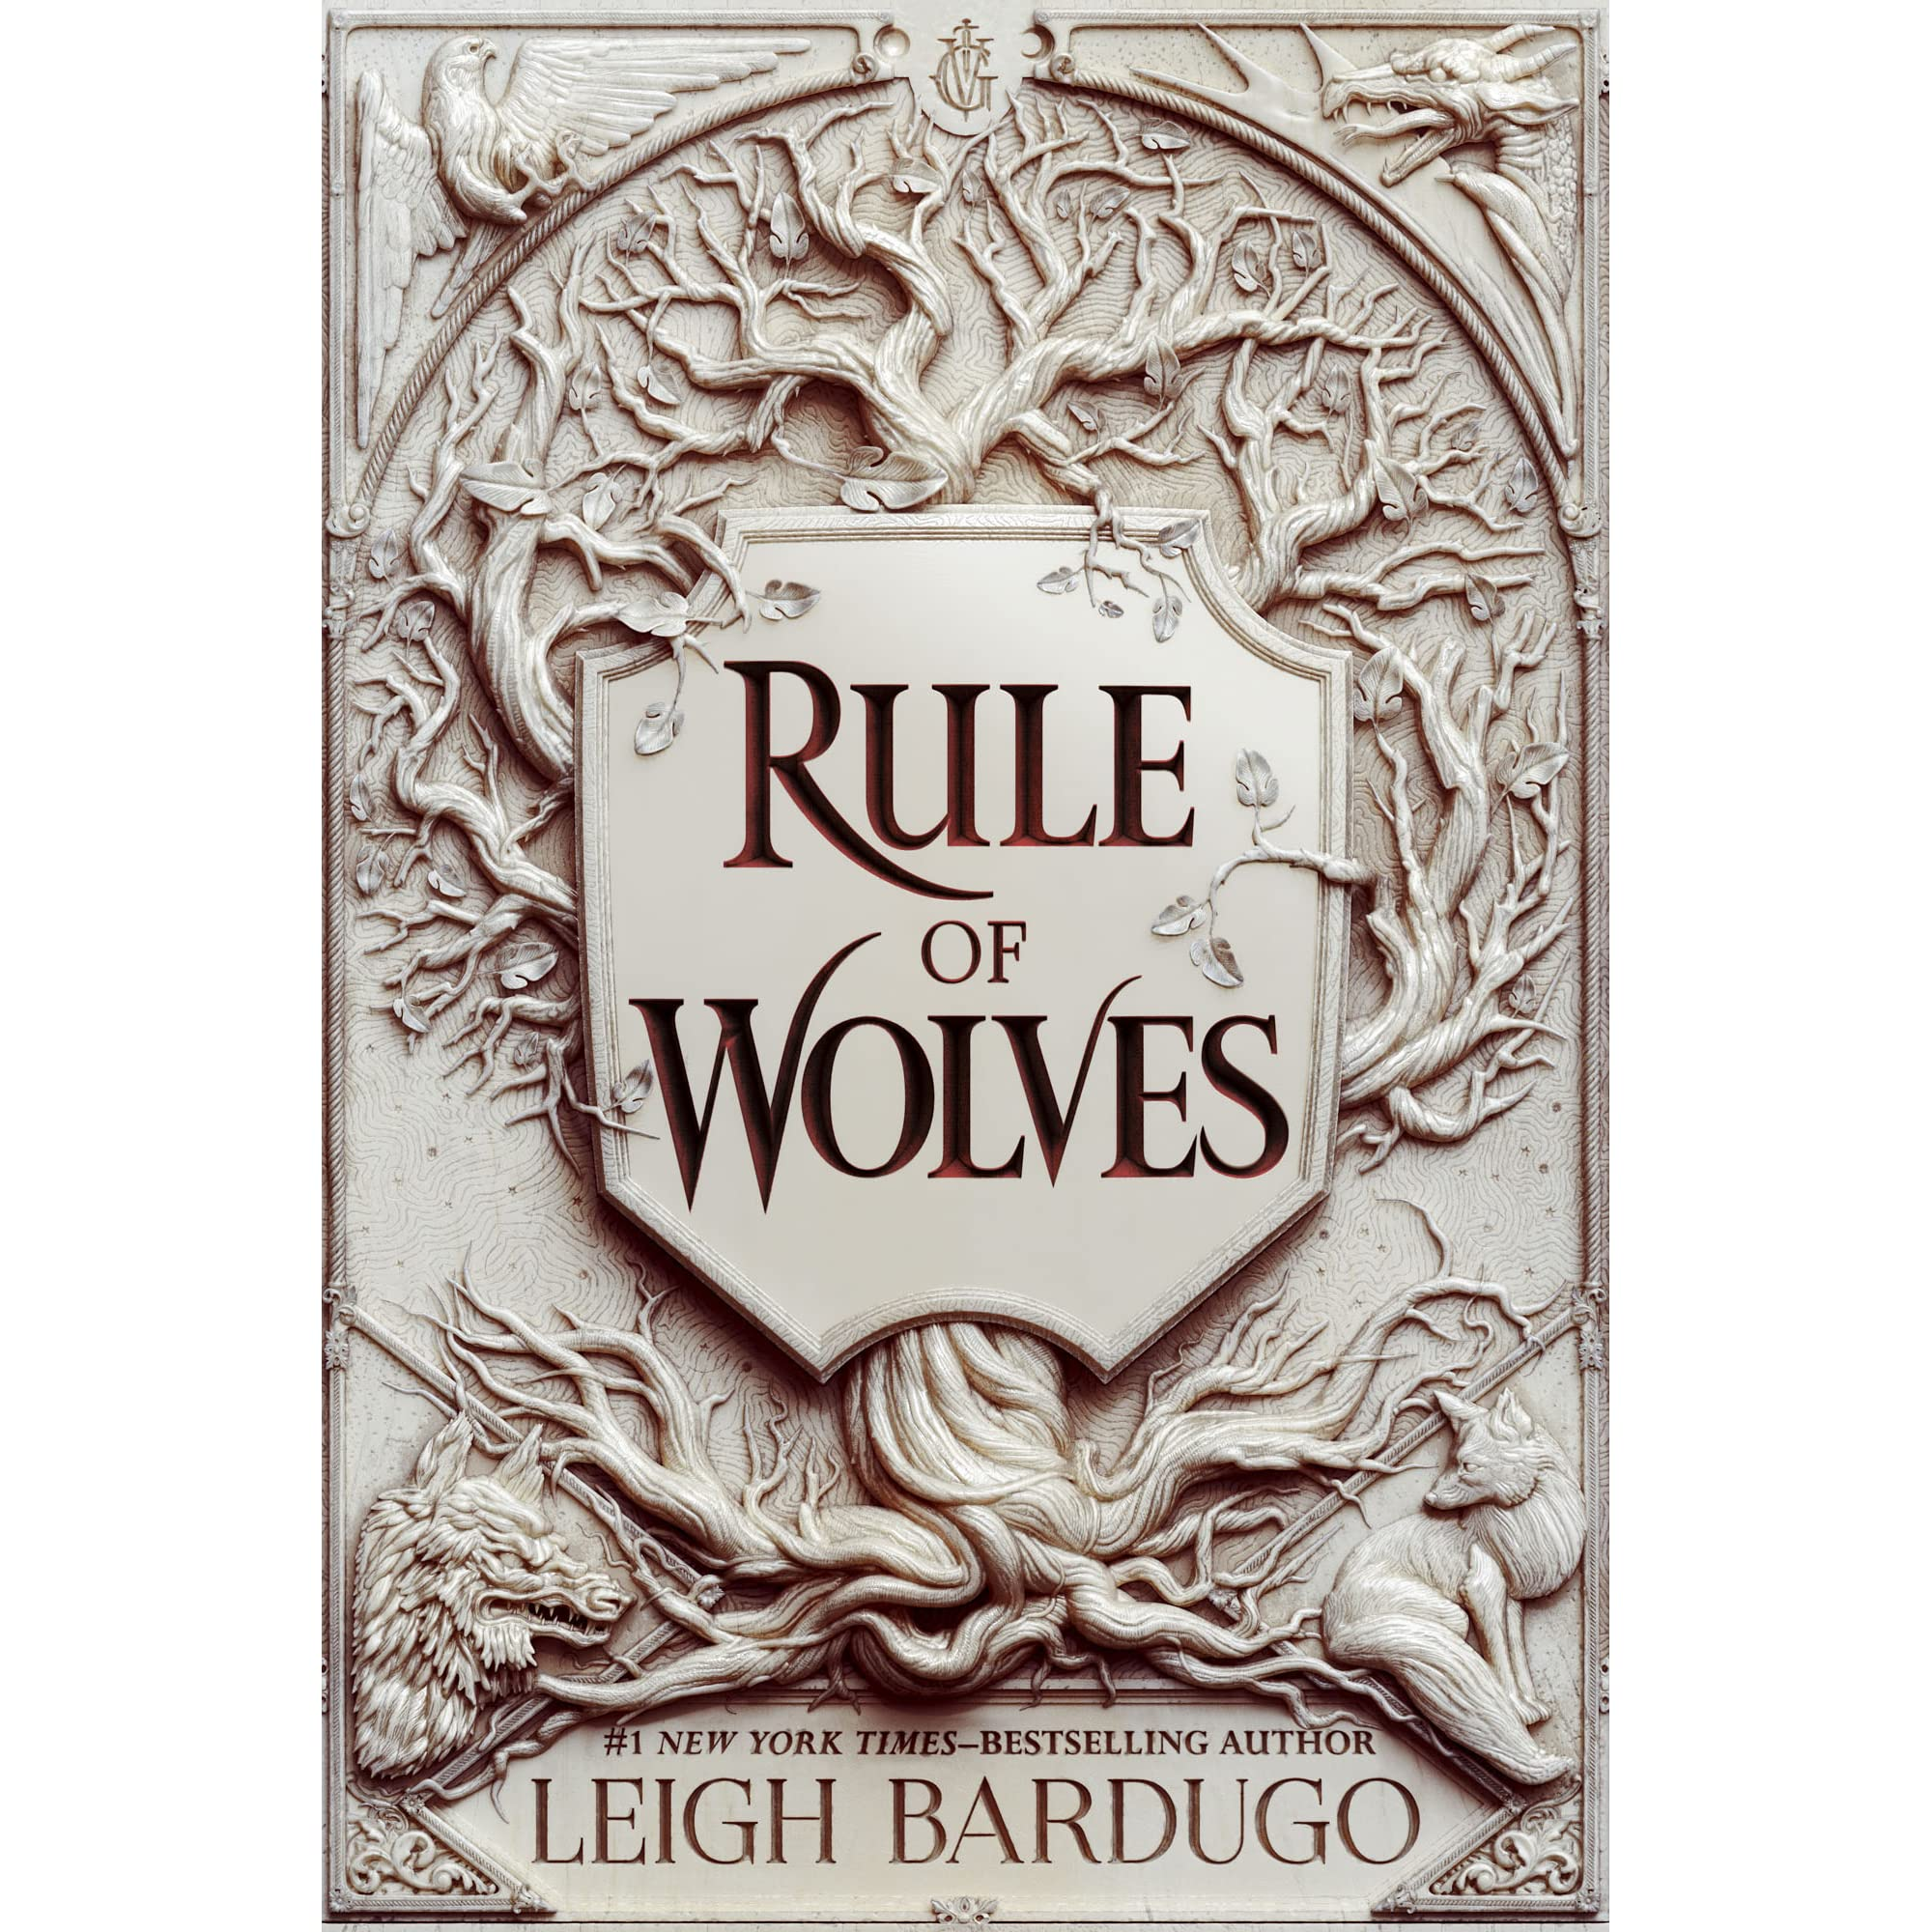 Rule of Wolves (King of Scars Duology, #2) by Leigh Bardugo